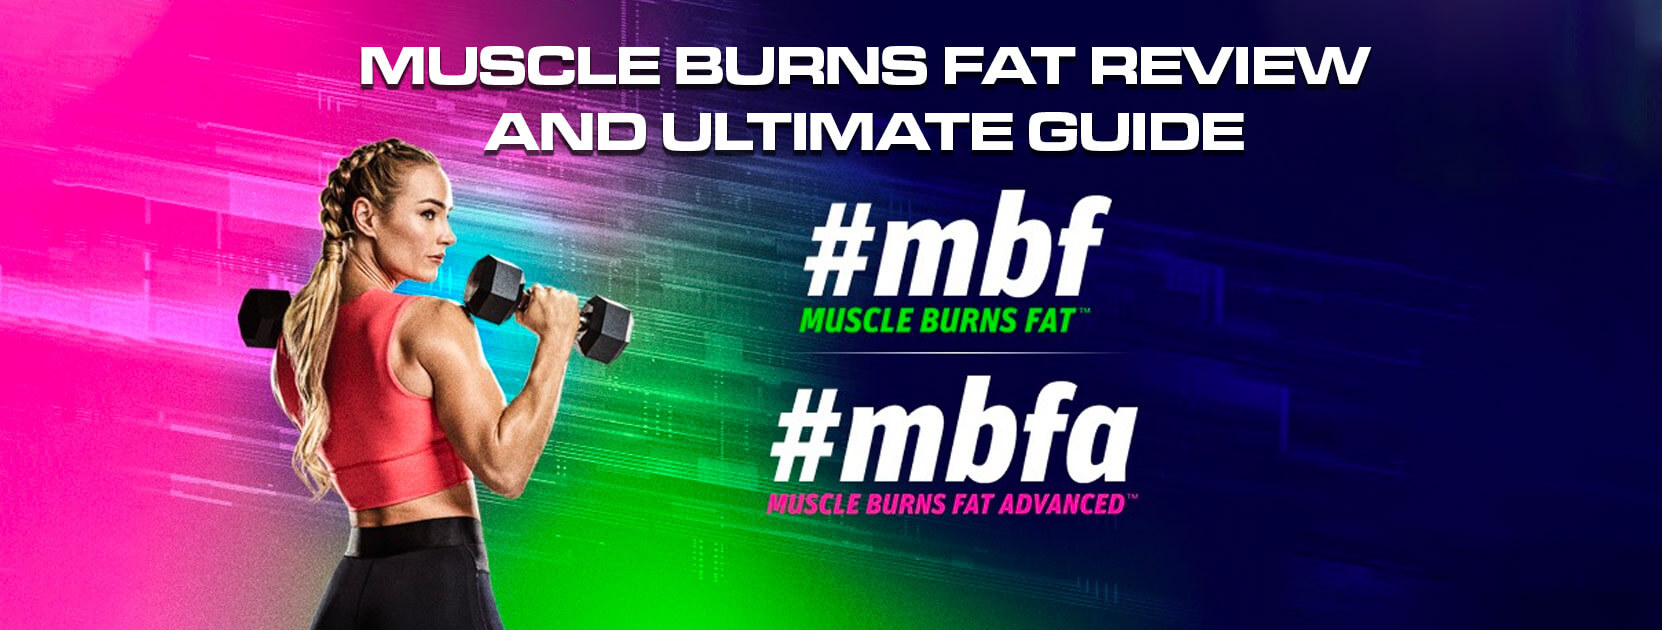 Muscle Burns Fat Review